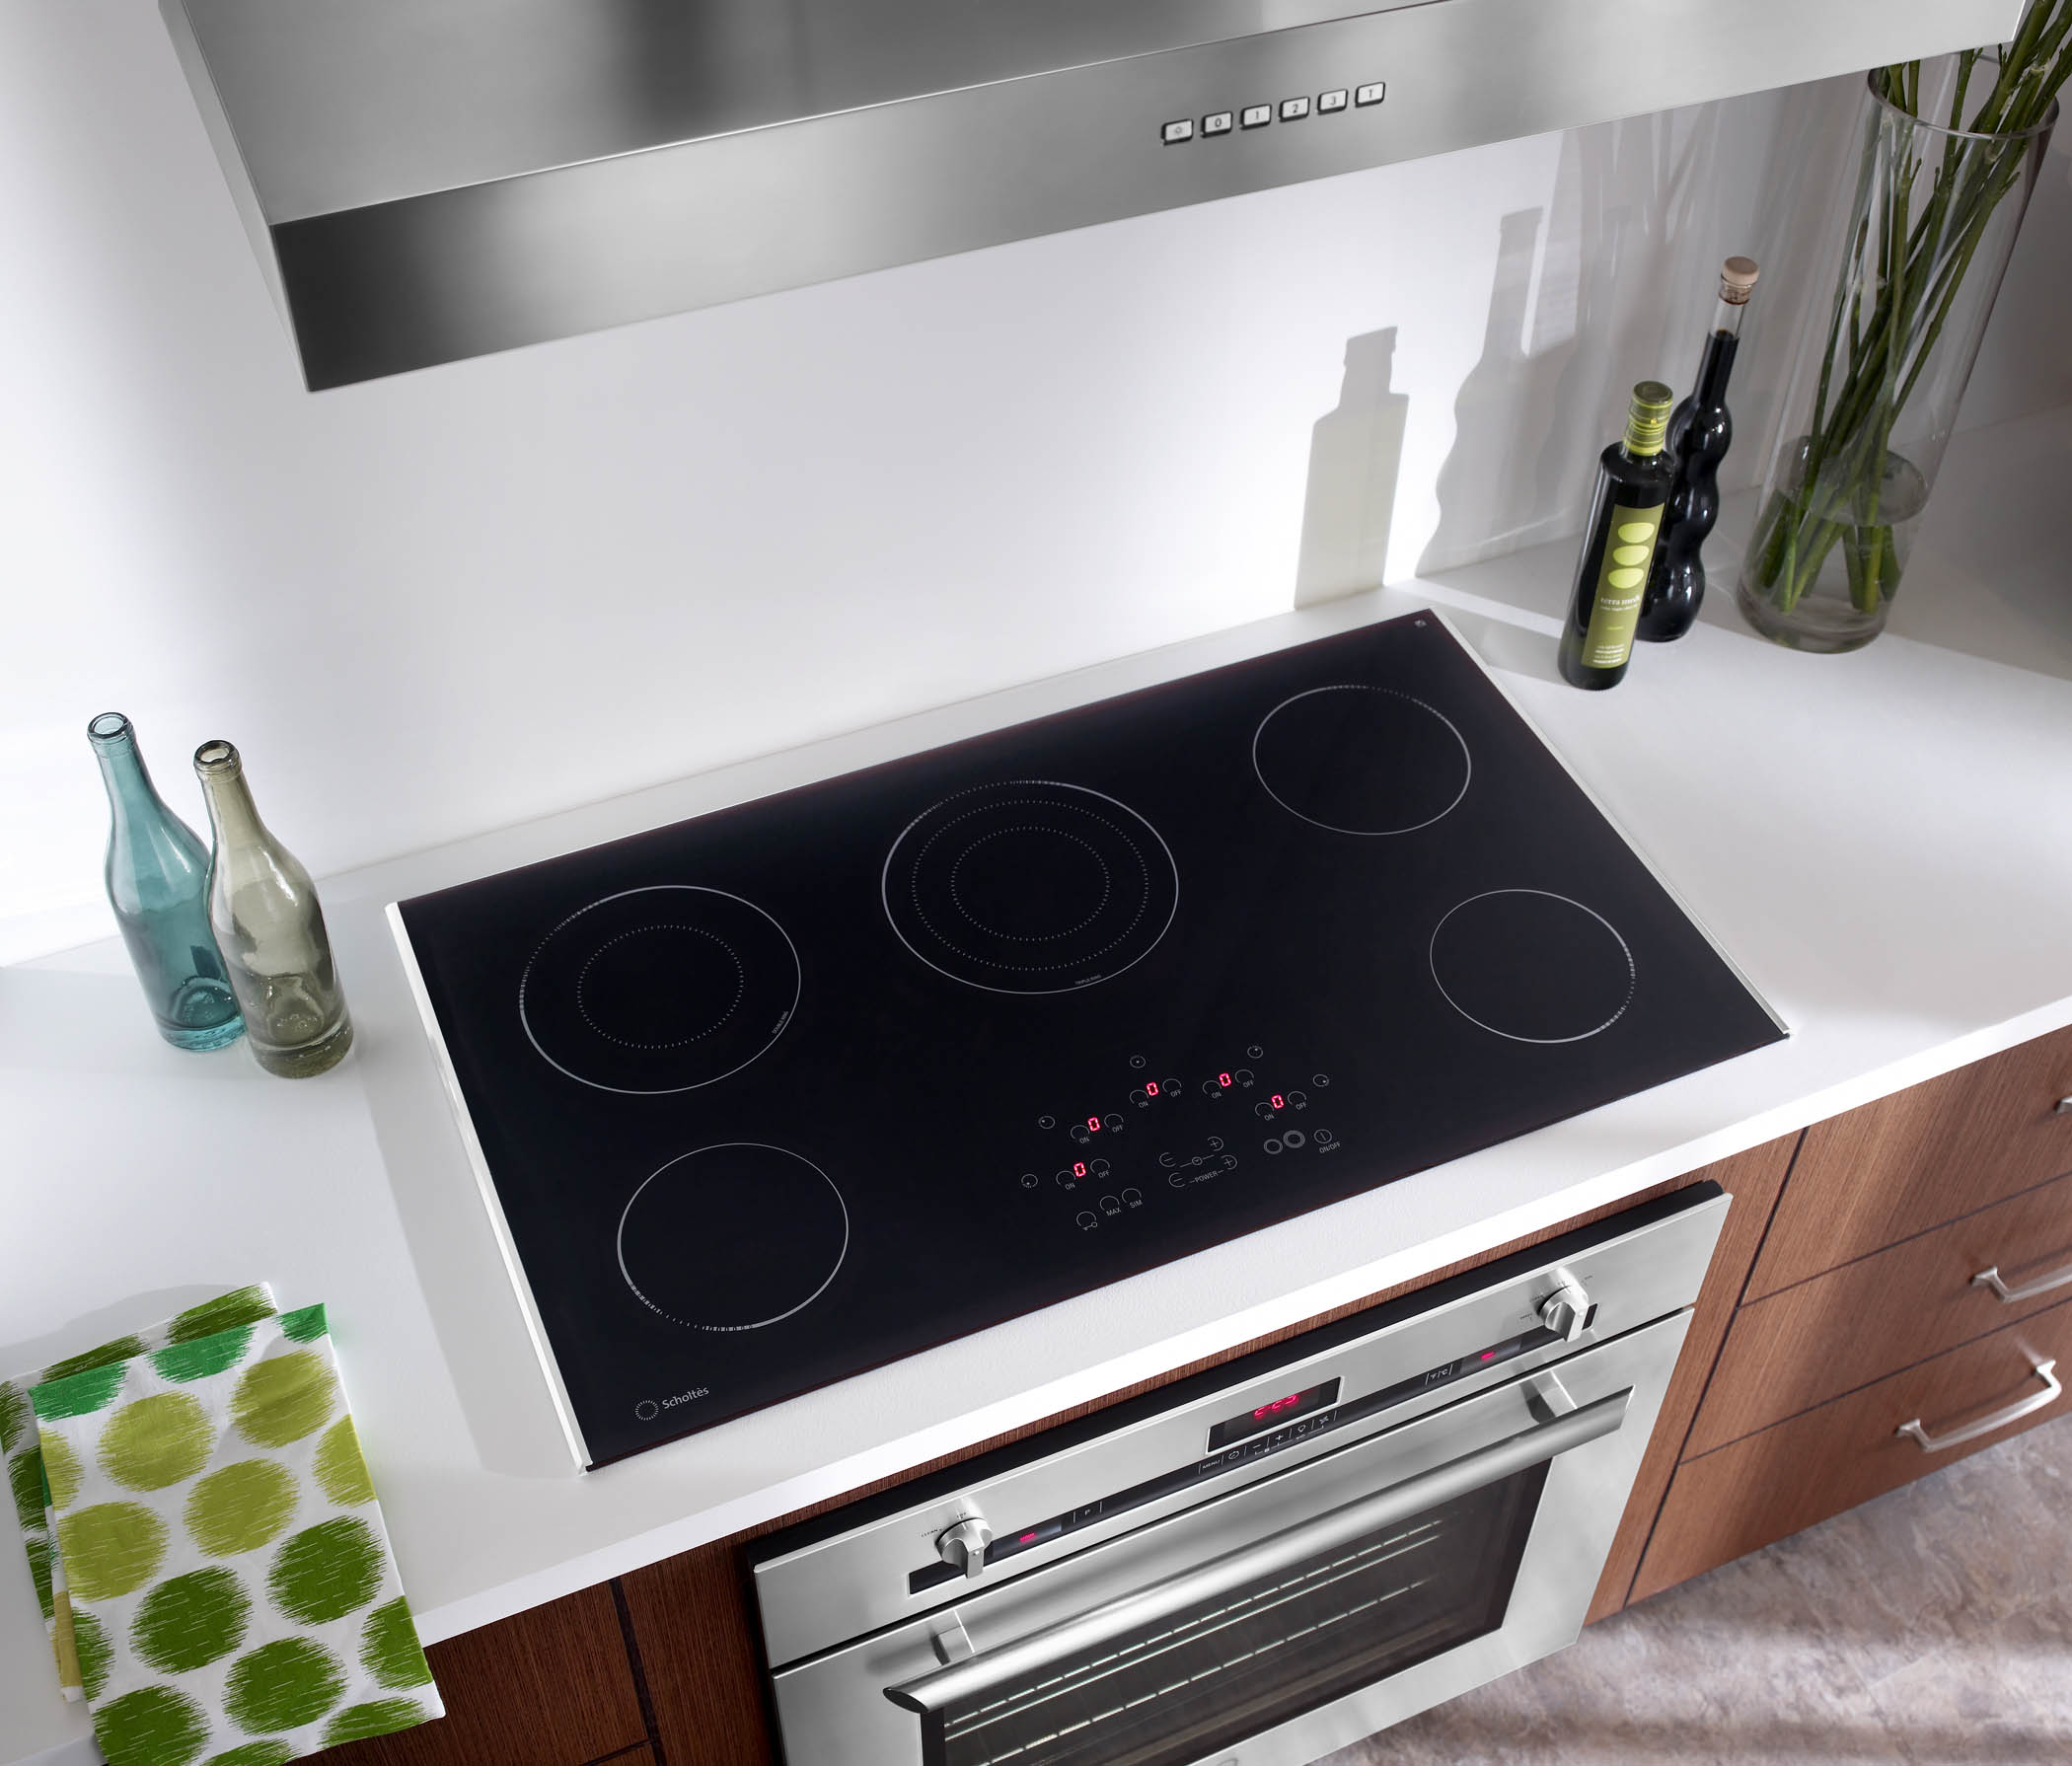 Wall oven under cooktop -  Wall Oven Cooktop Combination Ovens